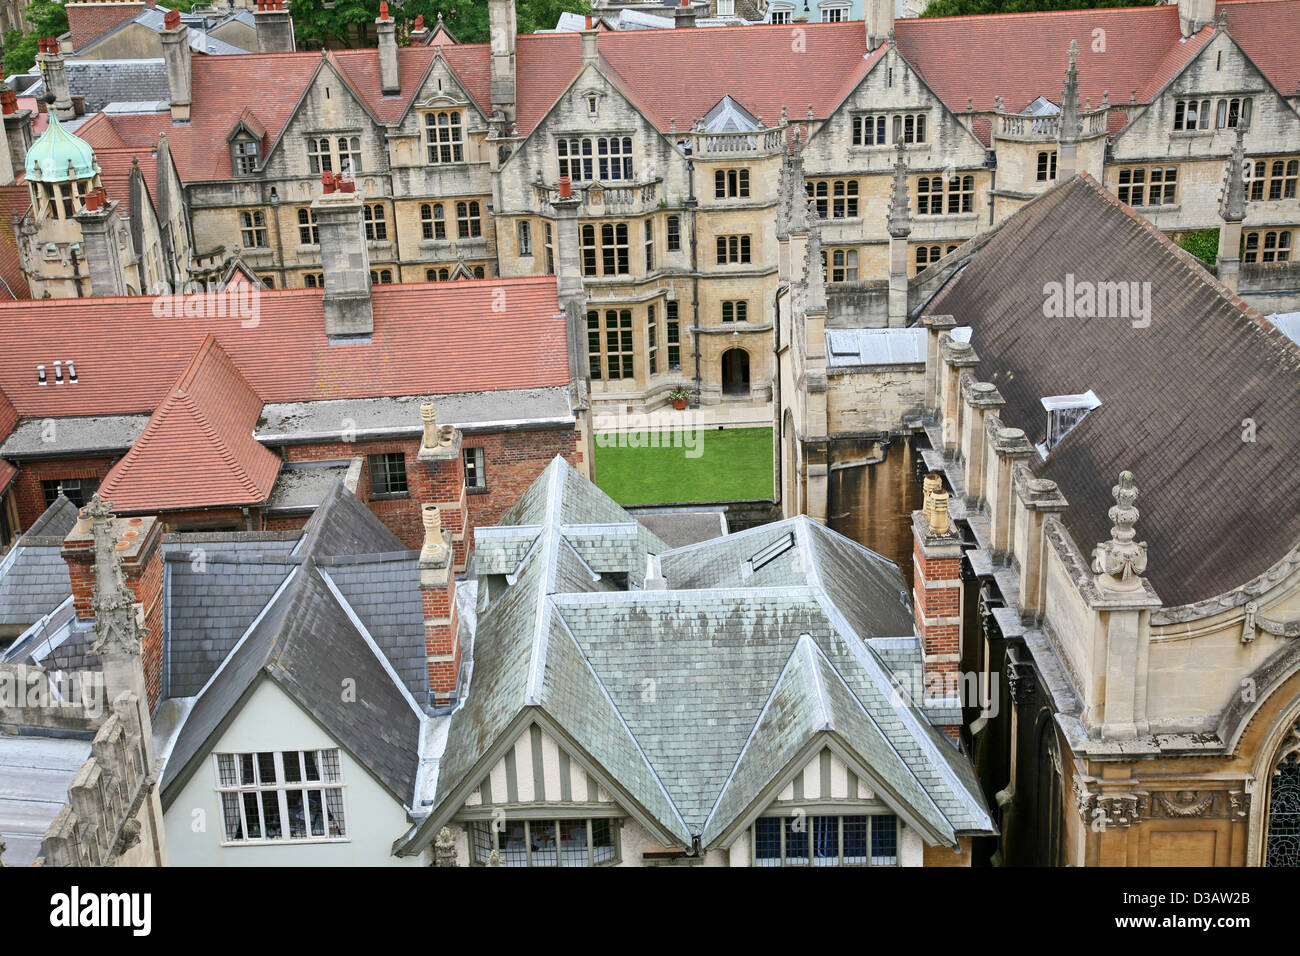 Oxford University from above, Brasenose College - Stock Image